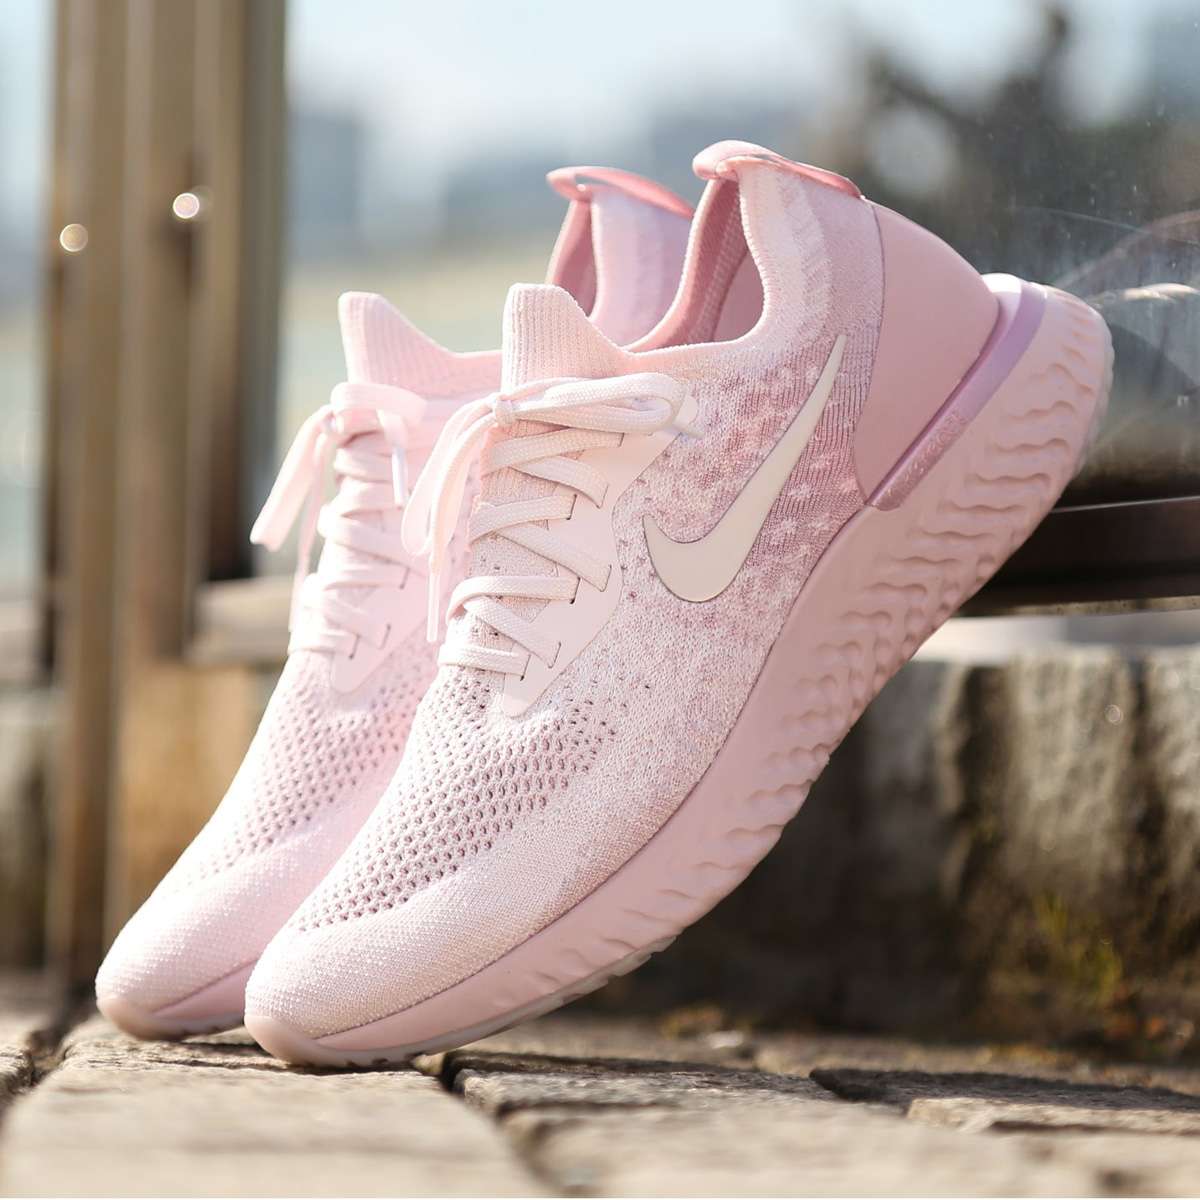 separation shoes 586ef 0d1da NIKE EPIC REACT FLYKNIT (Kie Ney pick re-act fly knit) (PEARL PINK PEARL  PINK-BARELY ROSE) 18SU-S